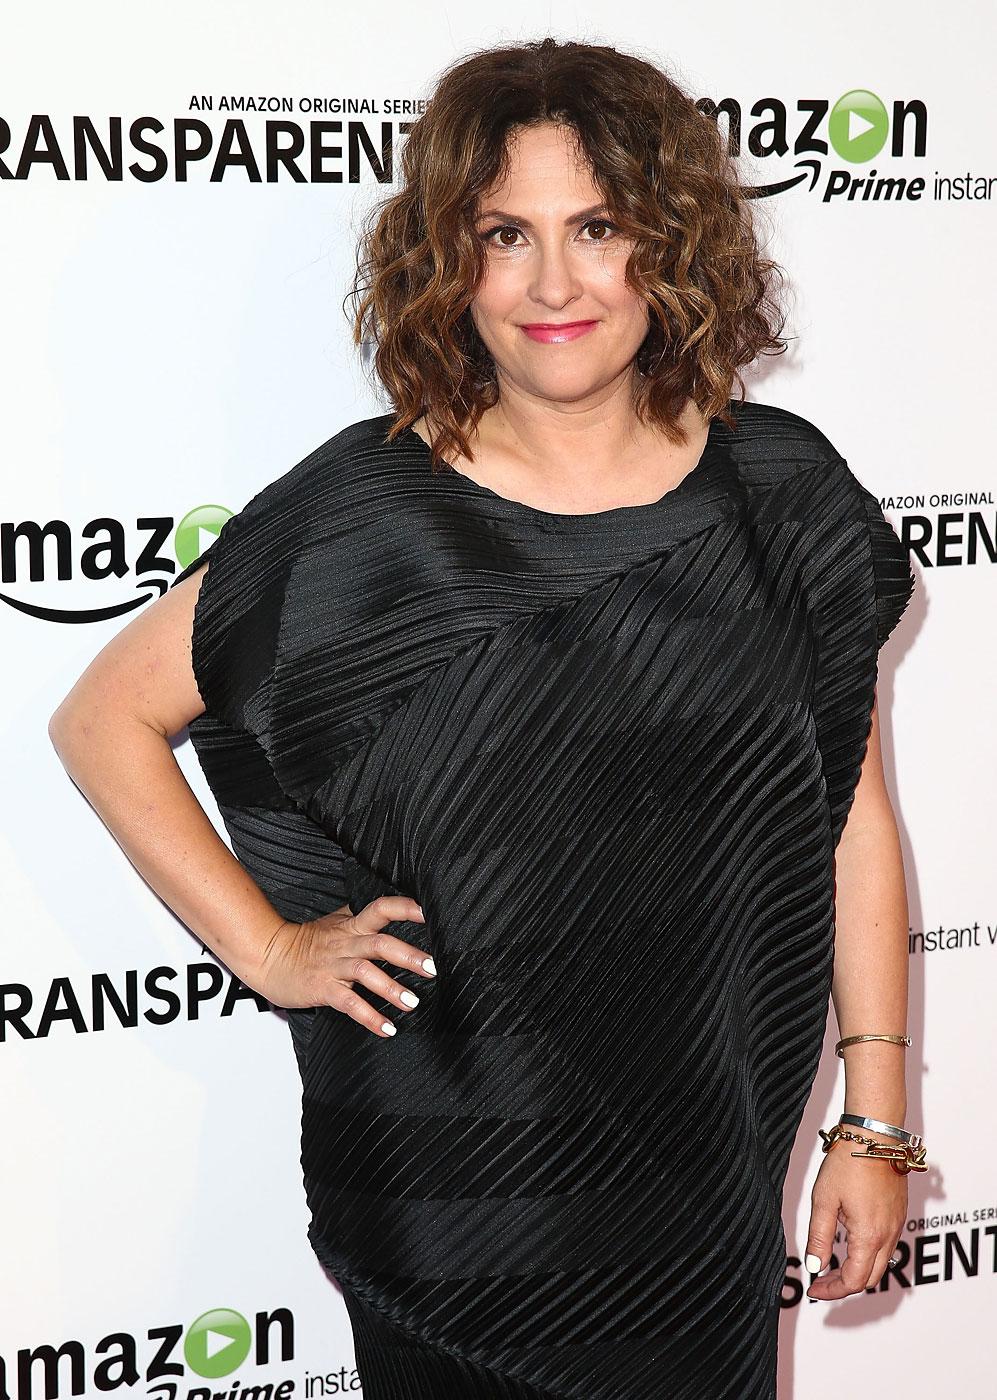 Writer Jill Soloway attends the premiere of Amazon's 'Transparent' at Ace Hotel on September 15, 2014 in Los Angeles, California.